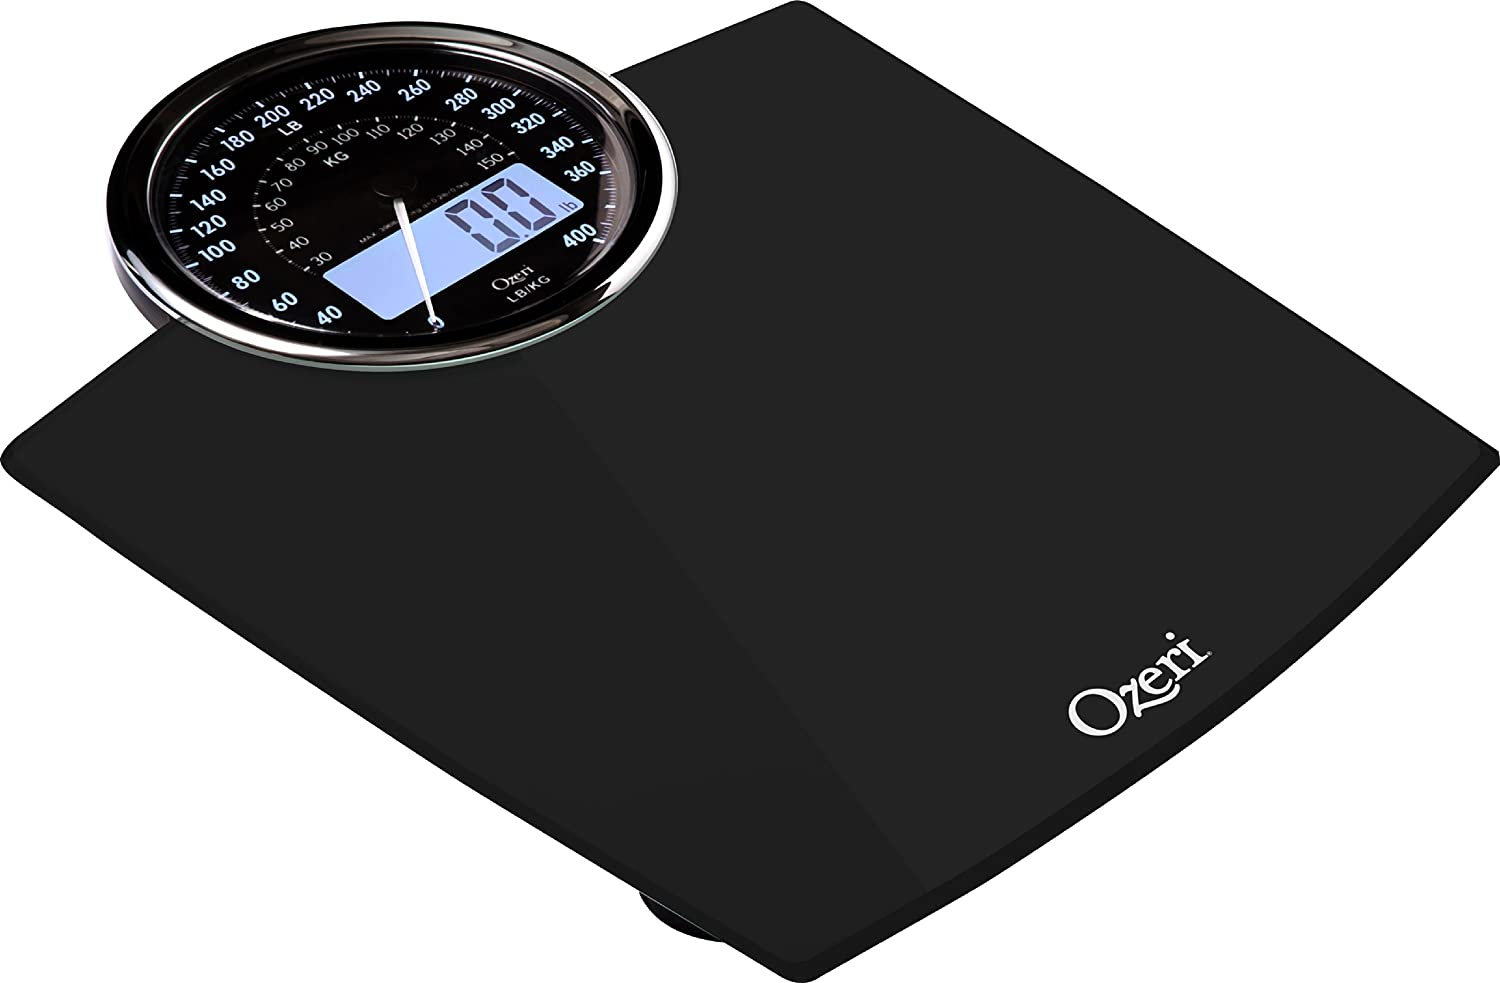 Digital Bathroom Scale with Electro-Mechanical Weight Dial